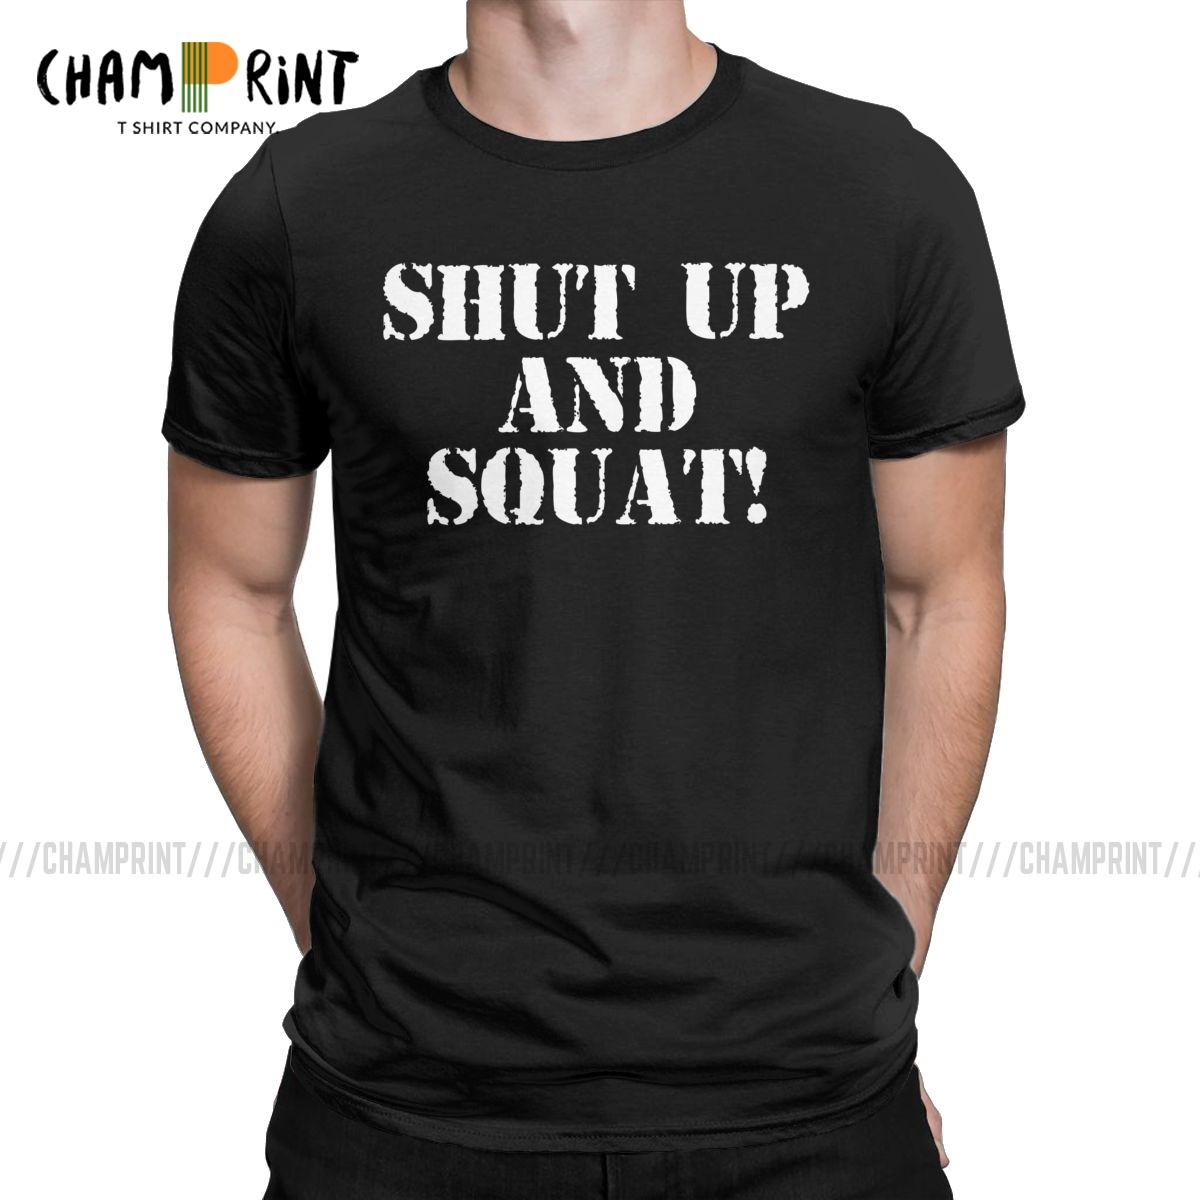 Men T-Shirts Shut Up And Squat Novelty Tees Short Sleeve Gym Fit Fitness Bodybuilding T Shirts Crewneck Clothes Printed